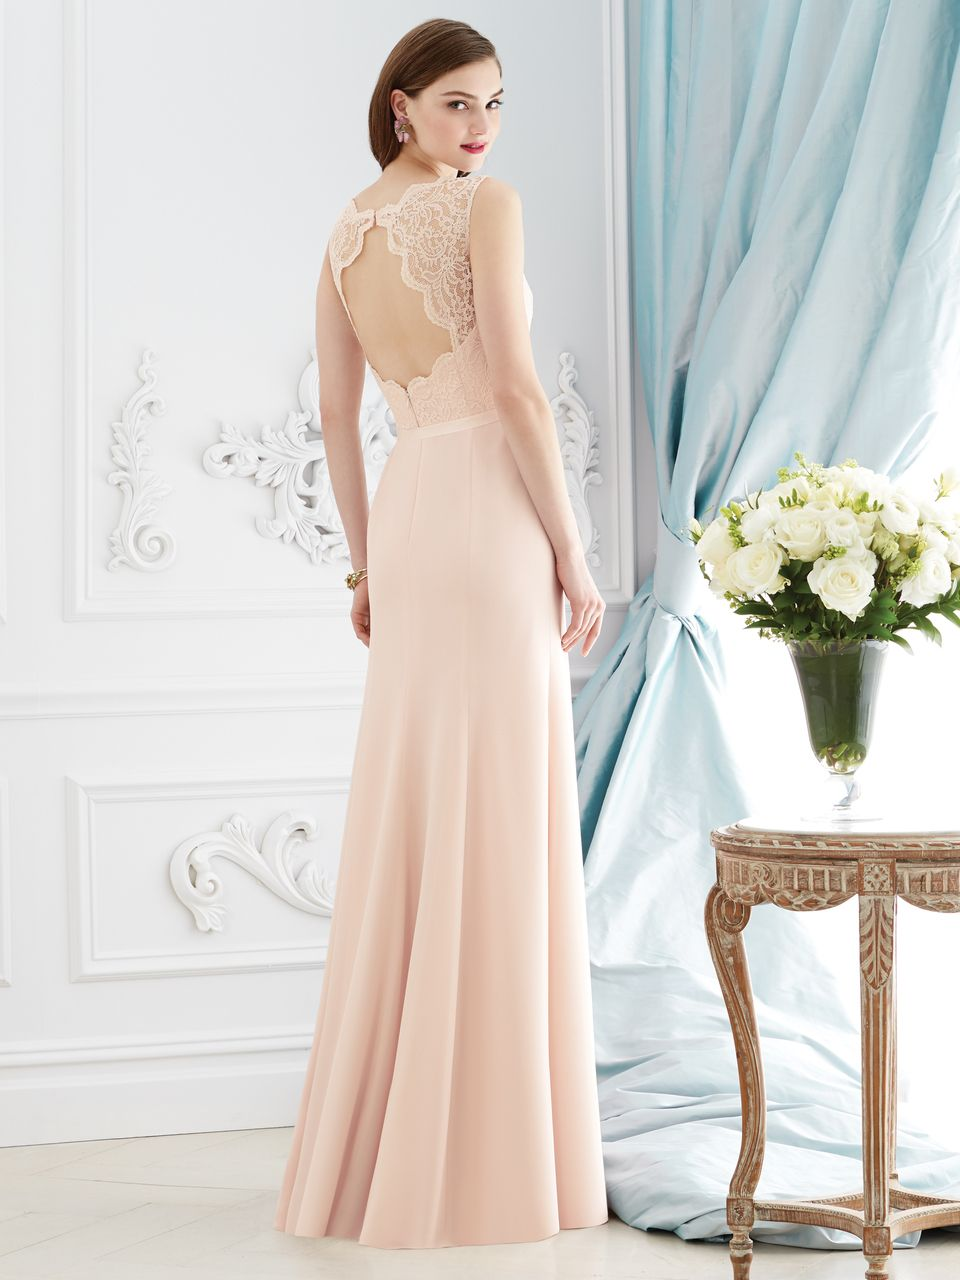 Dessy bridesmaid dress 2945 blush bridal and bridesmaid dress styles dessy collection bridesmaid dress style 2945 blush bridal ombrellifo Choice Image